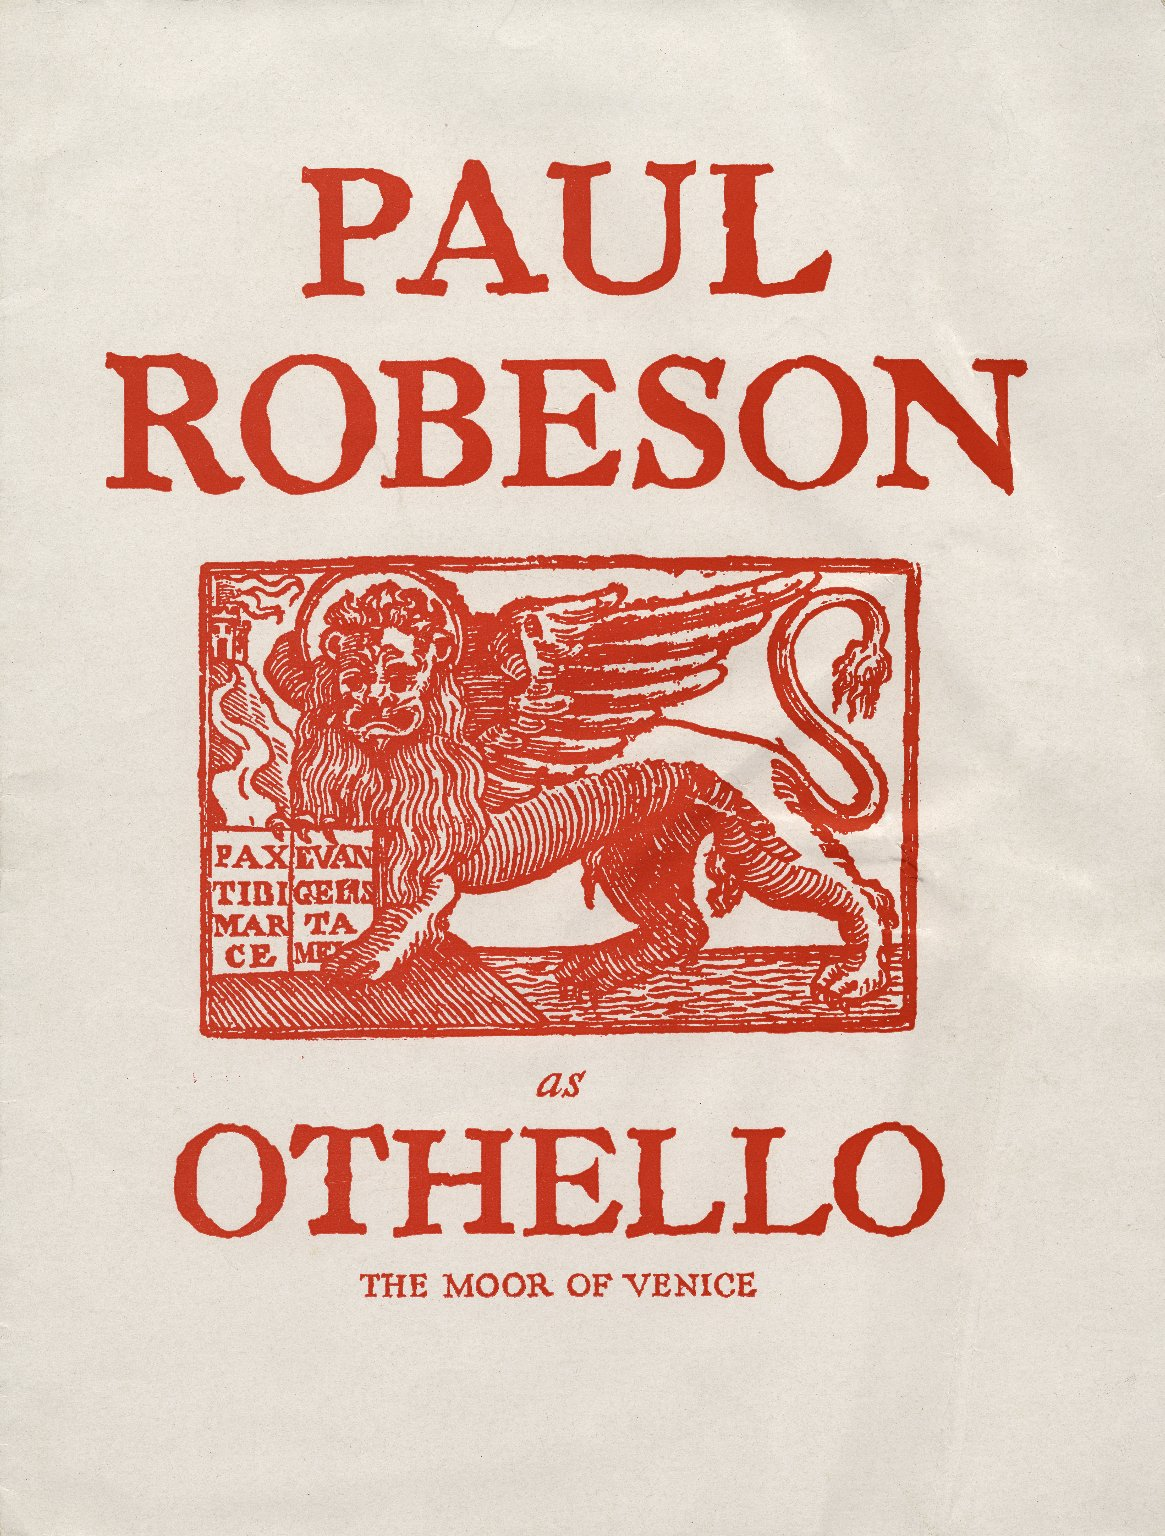 Paul Robeson as Othello the Moor of Venice